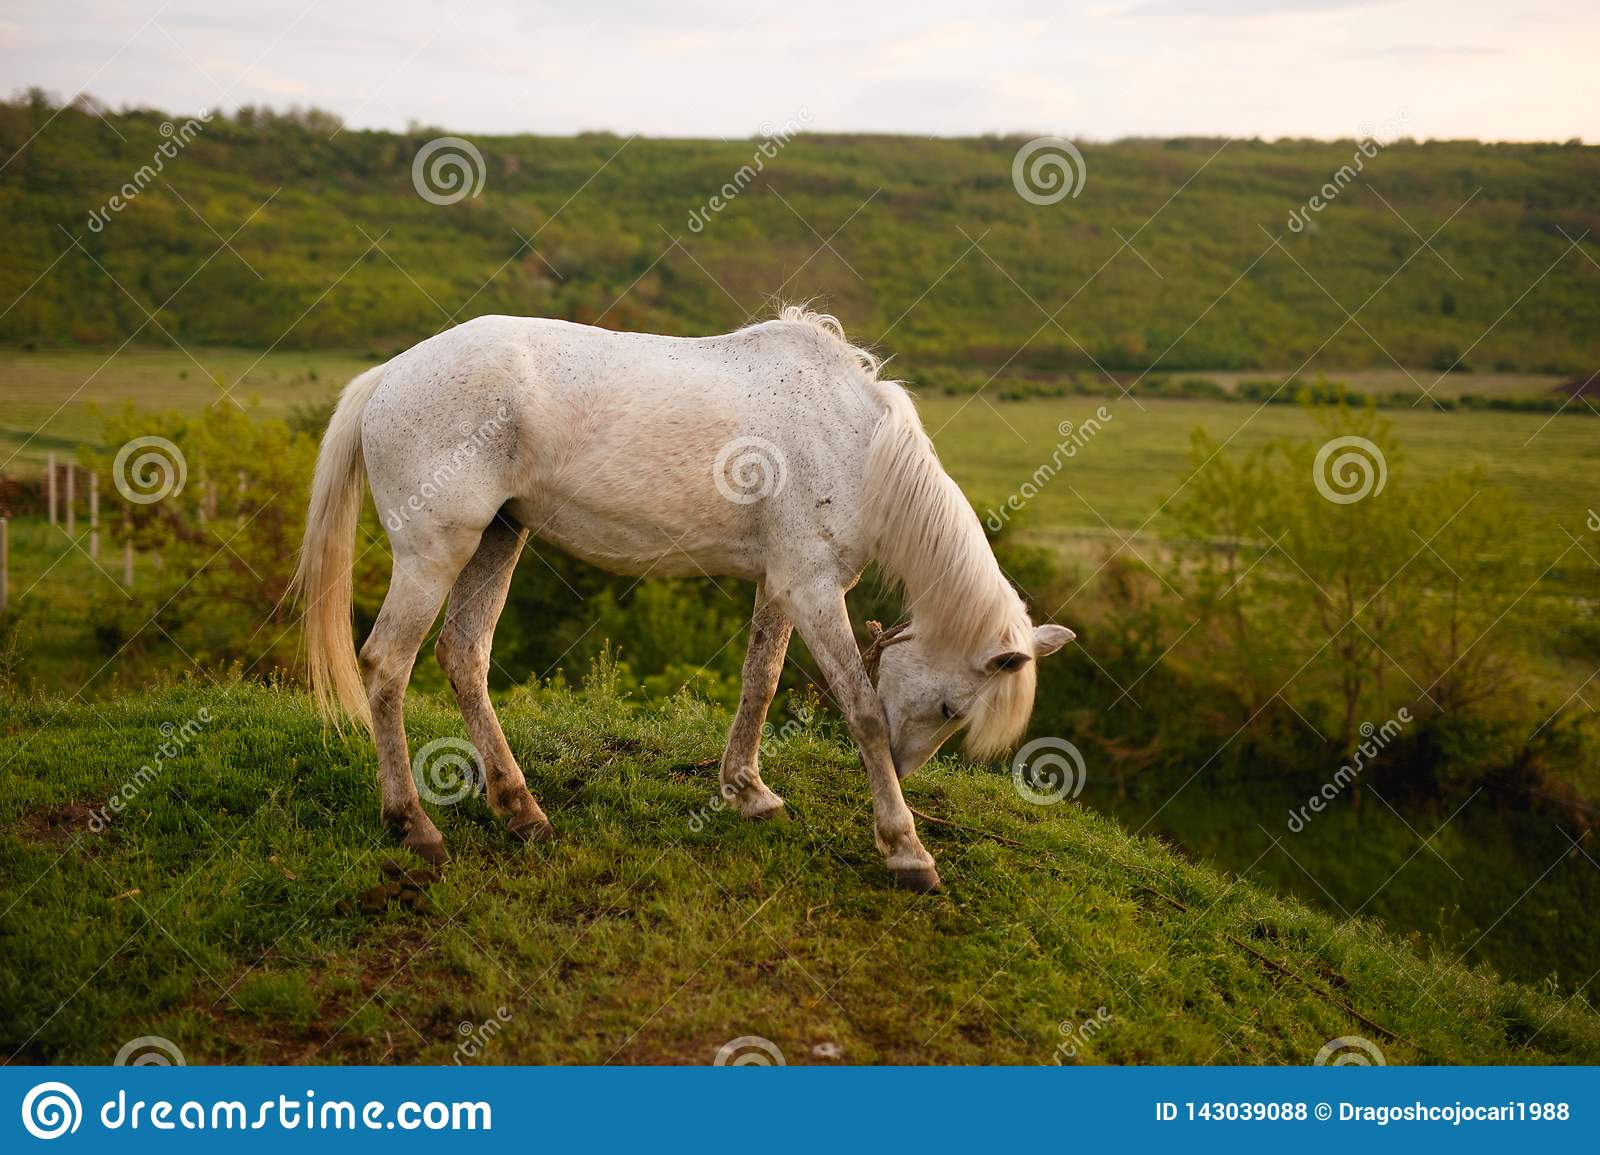 The profile of a white horse that bent his head, eating grass in the field. Animal in wild.